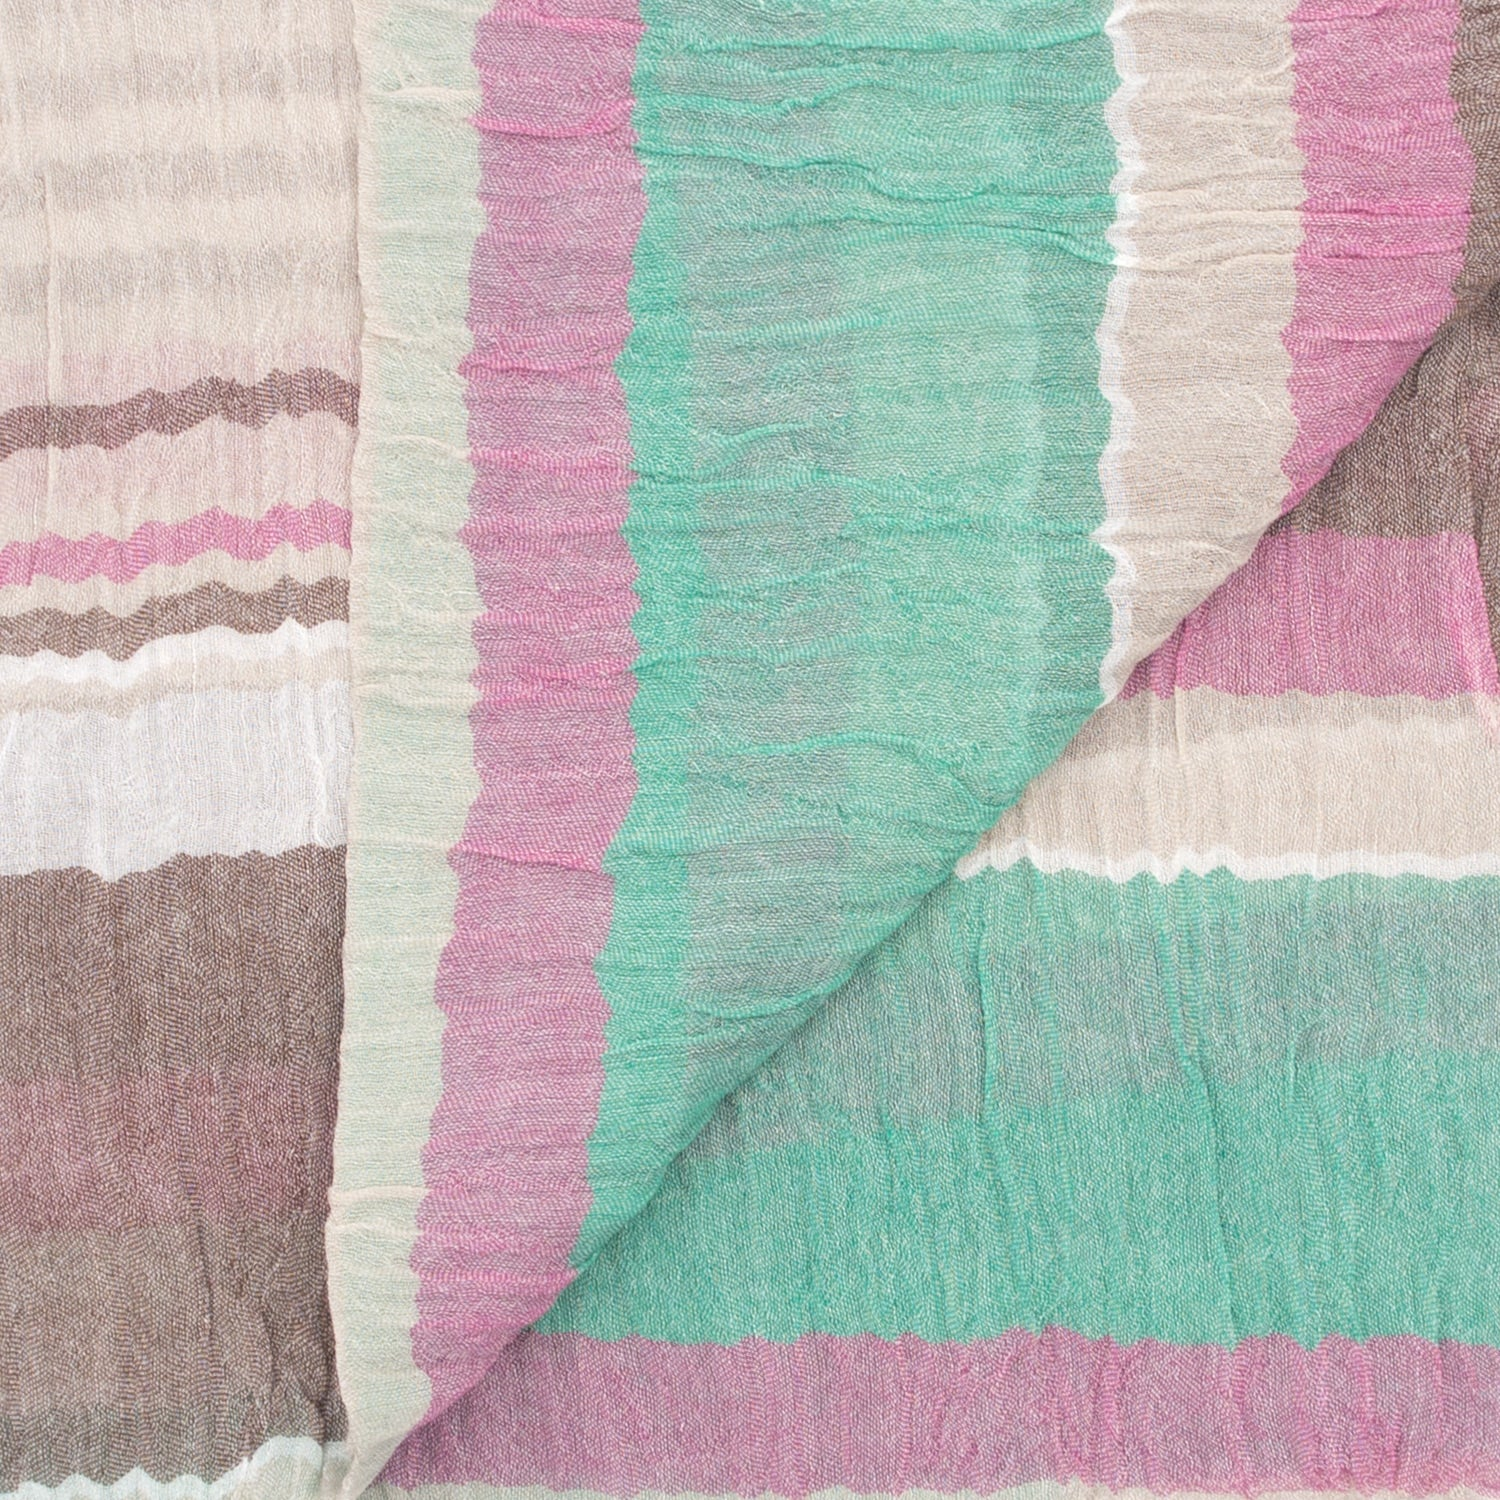 Doria & Dojola Pastel Stripes Cotton-Modal Scarf. 56% Cotton 44% Modal 60 cm x 170 cm. Made in Italy.